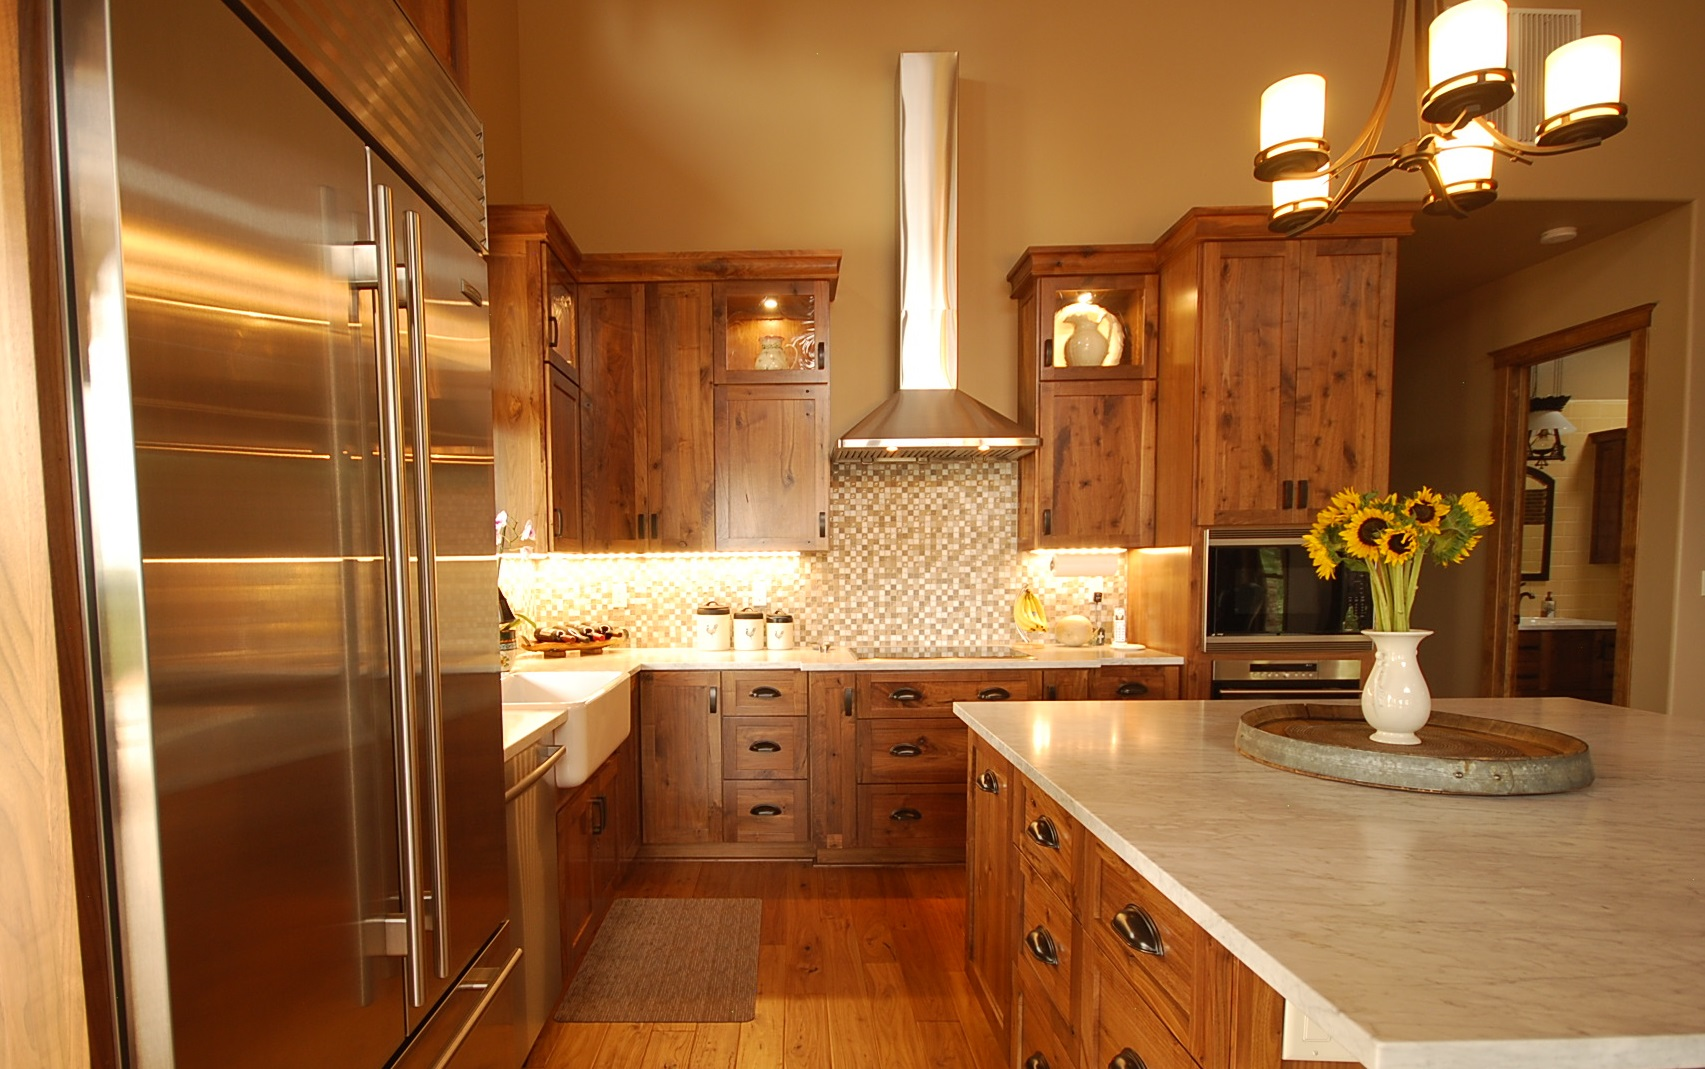 Ordinary Order Custom Kitchen Cabinets Online #1: Local Custom Built Rustic Walnut Cabinets And Calacatta Marble Counters With Oil Rubbed Bronze Drawer Pulls.